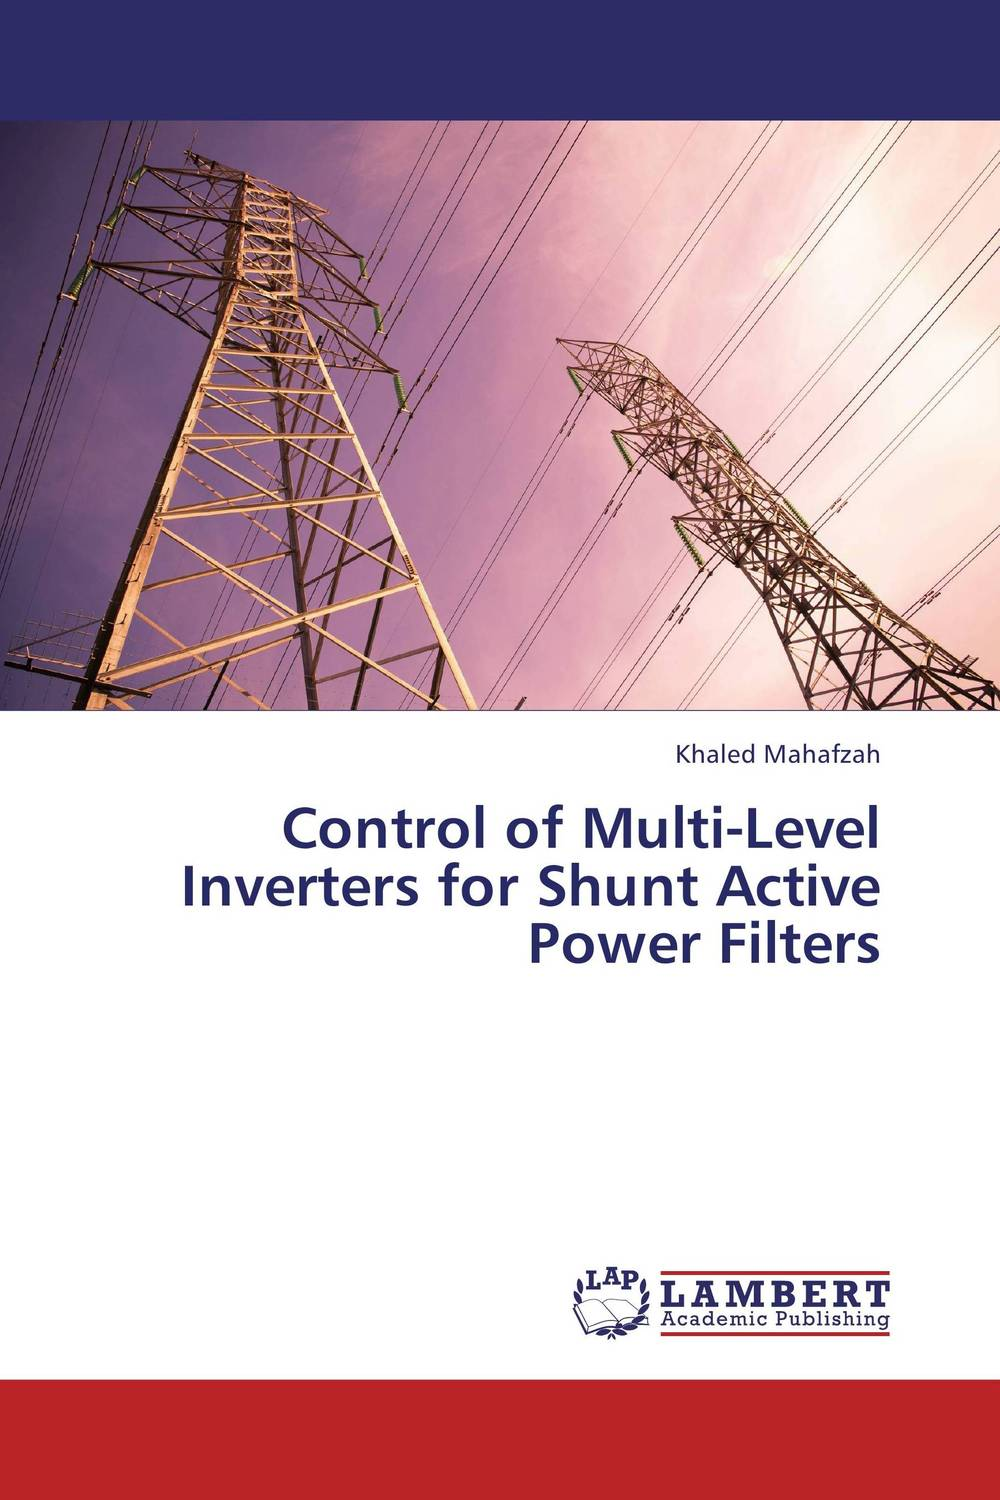 Control of Multi-Level Inverters for Shunt Active Power Filters i gottlieb gottlieb power supplies switching regulators inverters and converters paper only